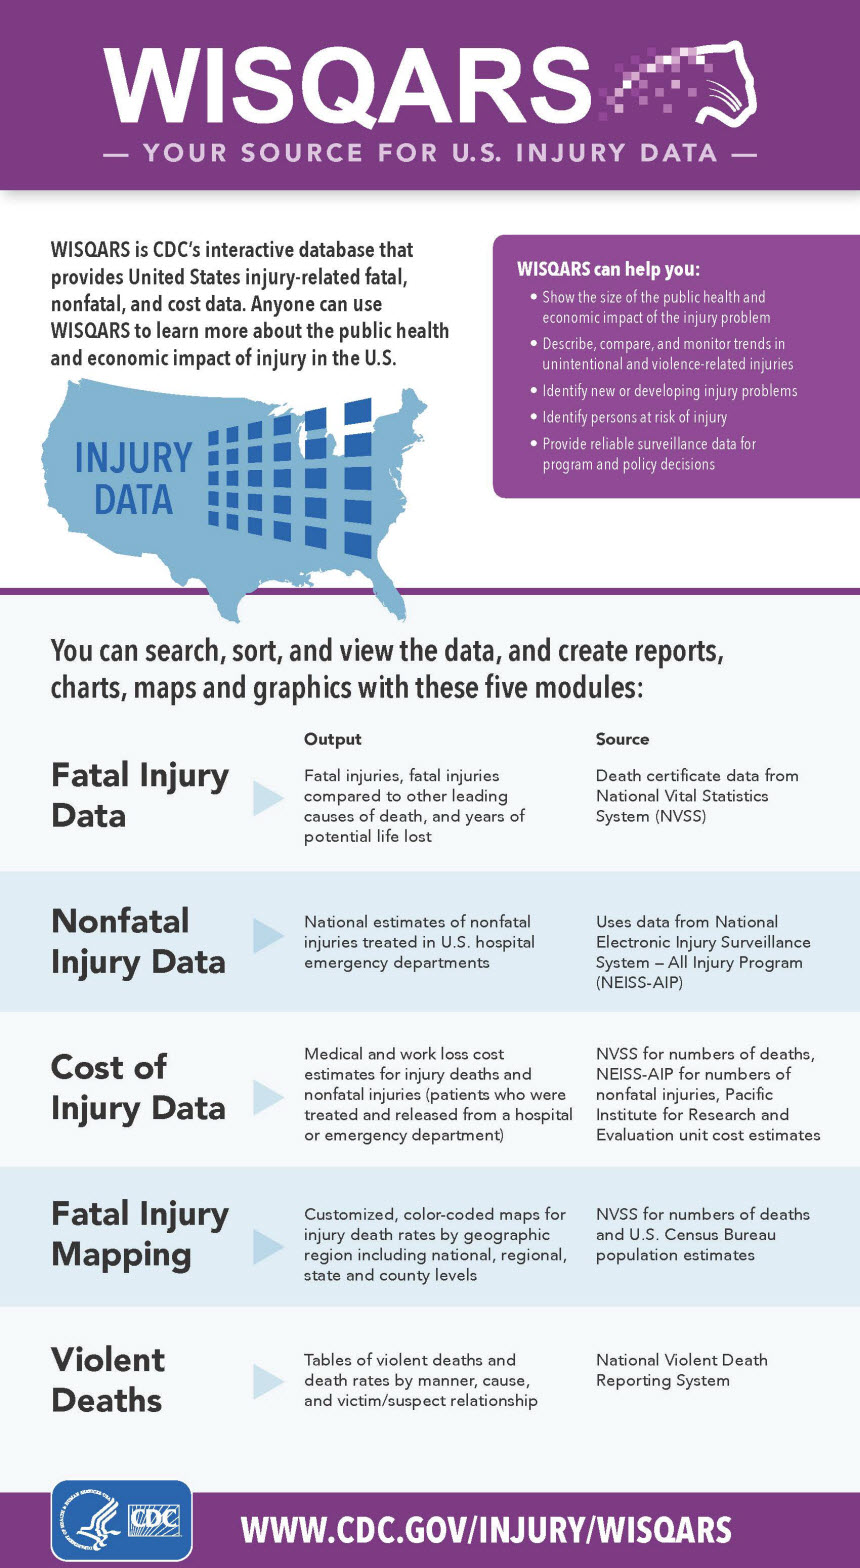 WISQARS: YOUR SOURCE FOR U.S. INJURY DATA. WISQARS is CDC's interactive database that provides United States injury-related fatal, nonfatal, and cost data.